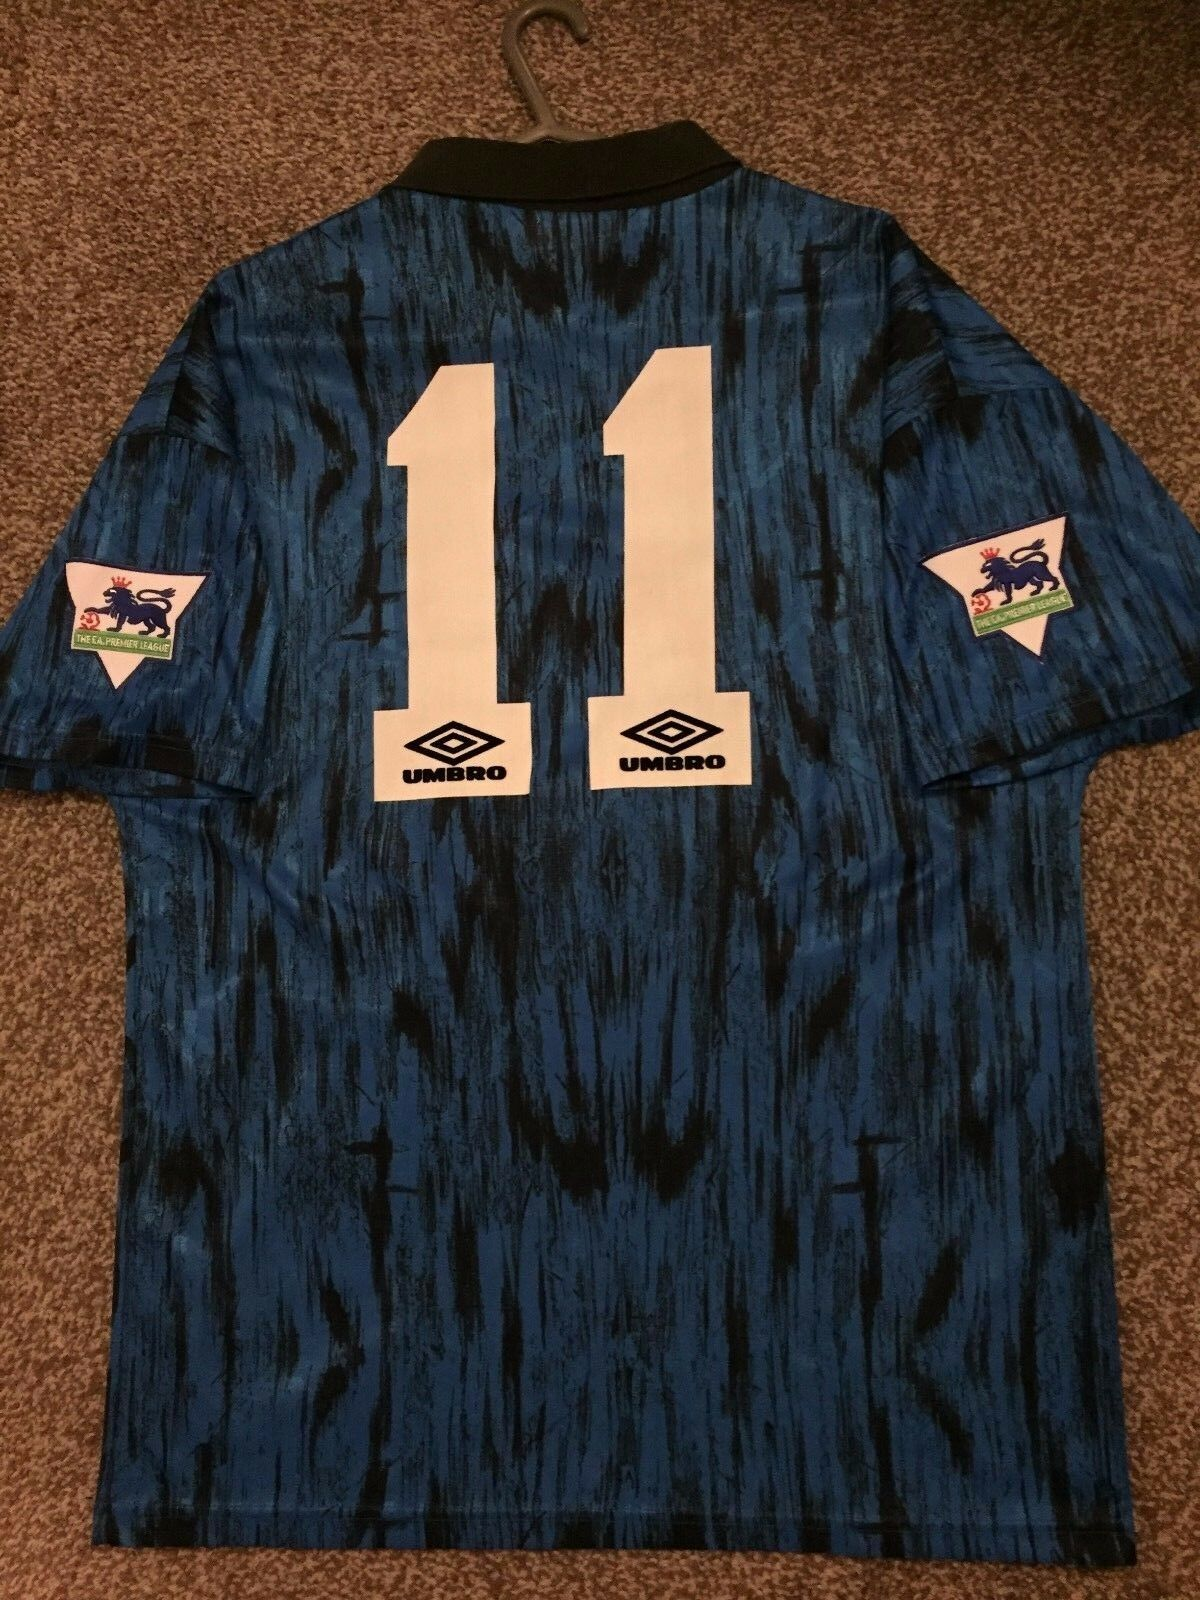 Manchester United Vintage 199293 Away Camicia Adulti M 11